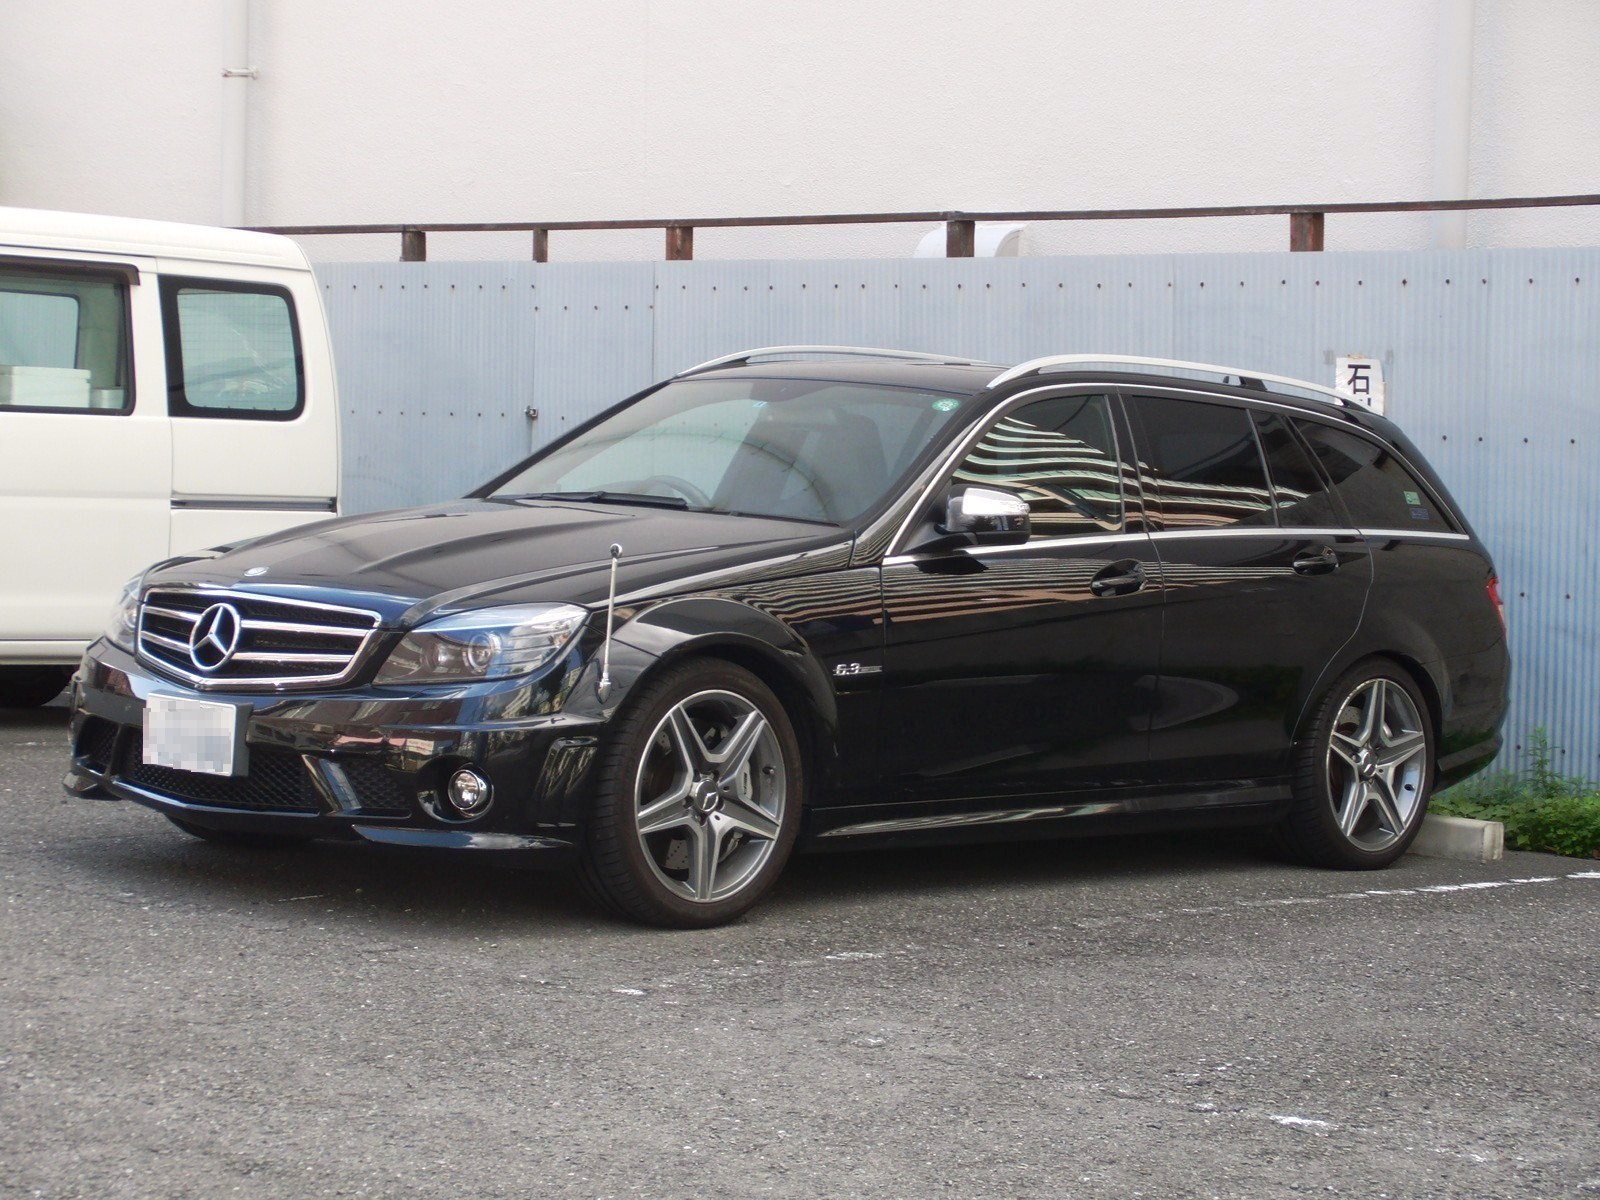 file mercedes benz c63 amg station wagon s204 jpg